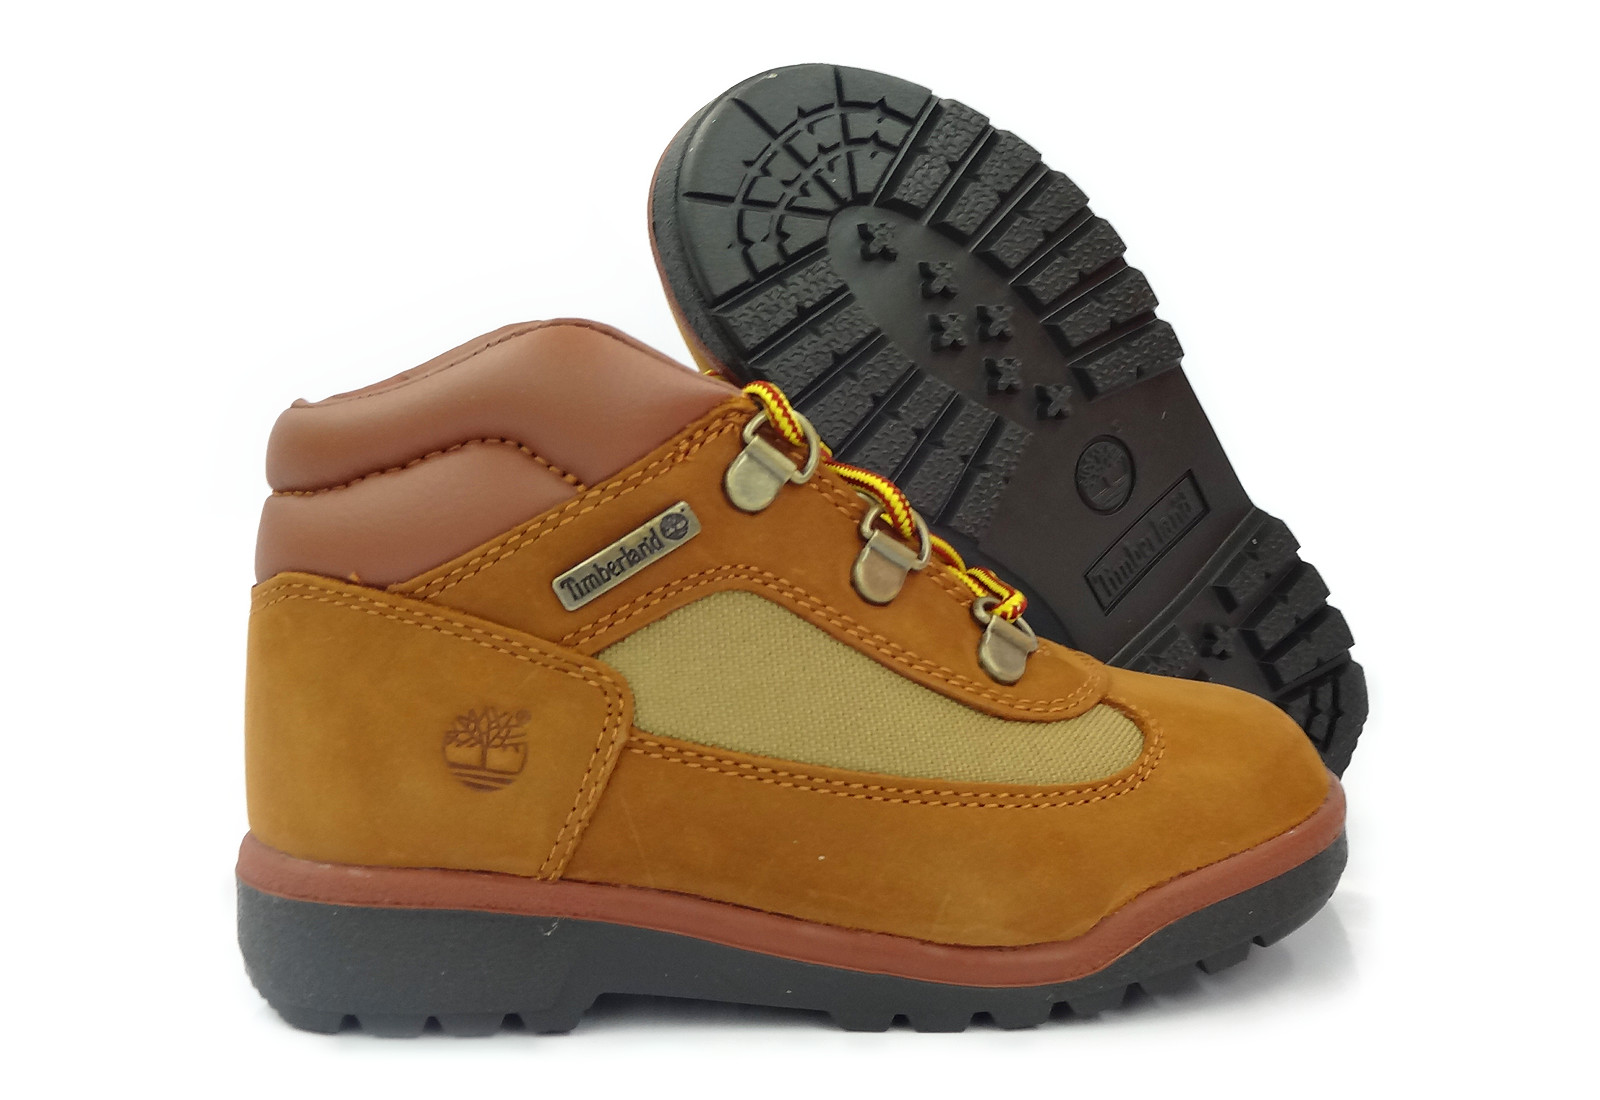 timberland field boot brown black boots toddlers baby size